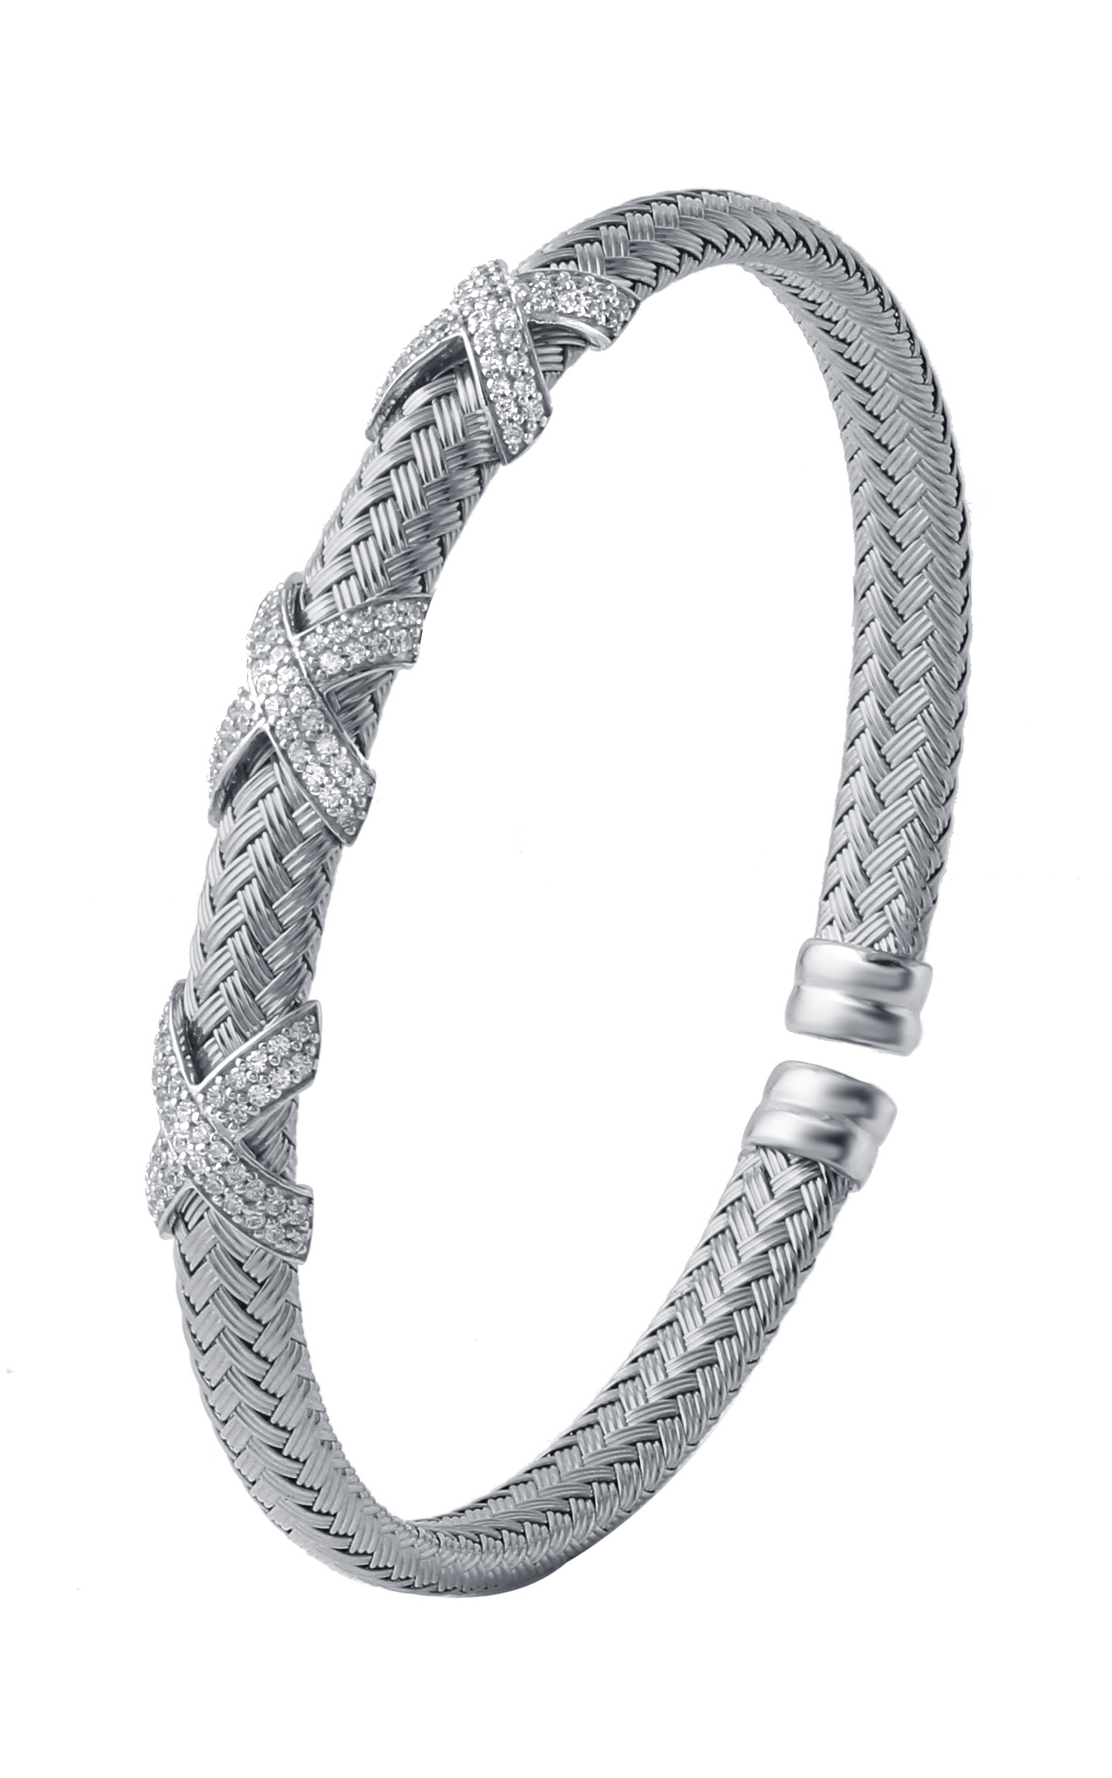 Charles Garnier Bracelet Paolo Collection MLC8061WZ product image